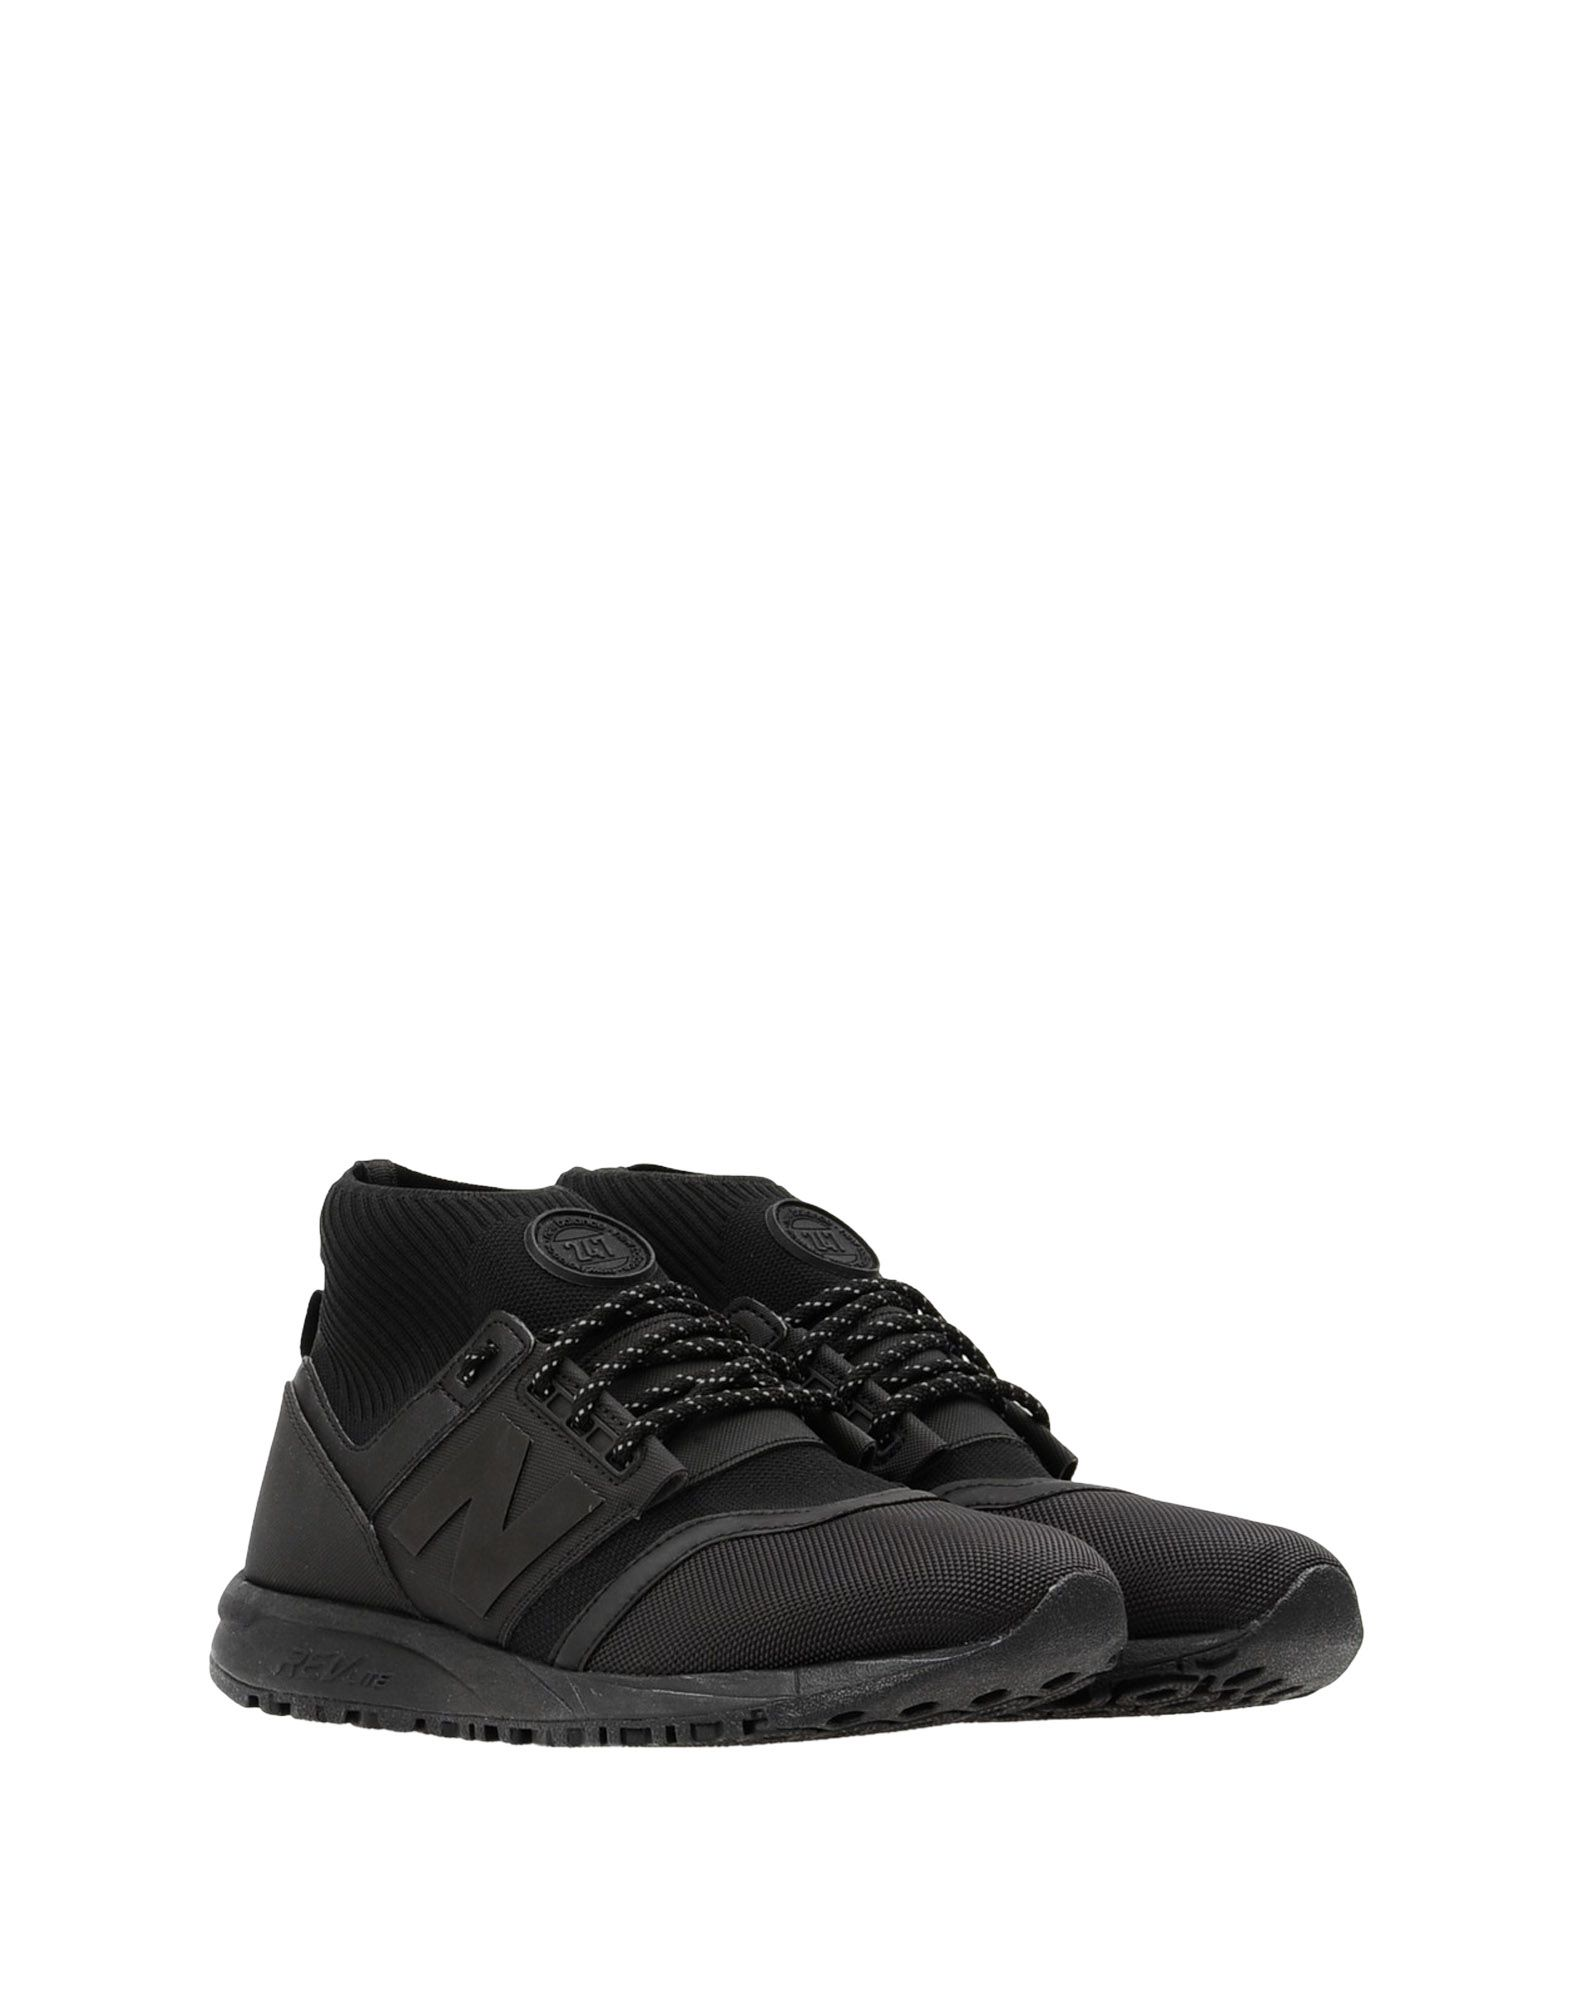 Sneakers New Balance 247 Boot - Homme - Sneakers New Balance sur